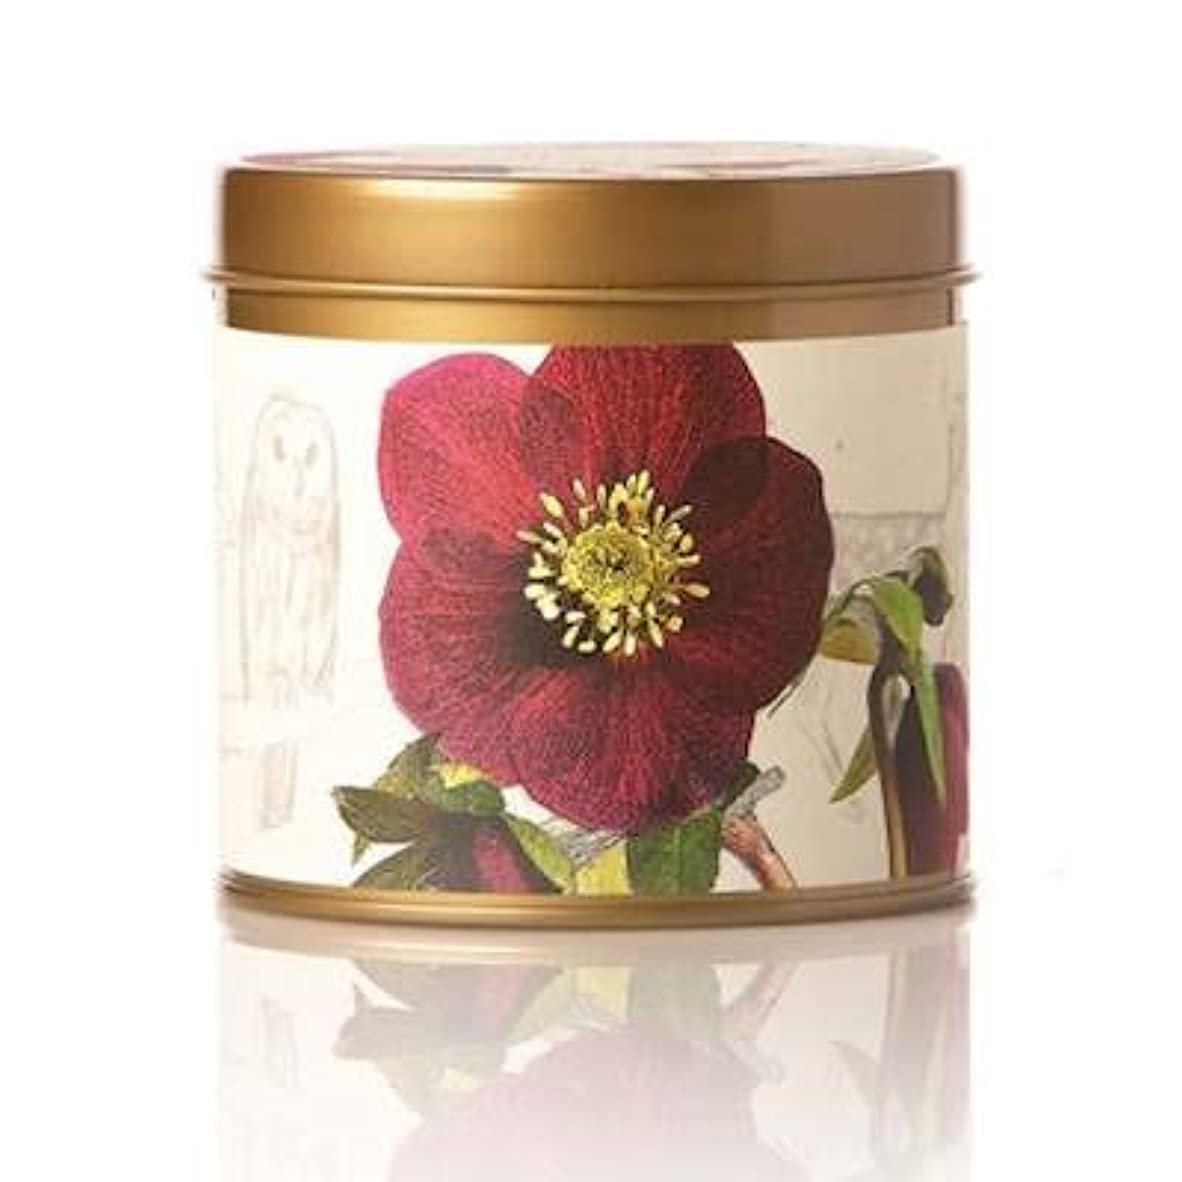 傾向高原四半期(Oak Moss & Myrrh) - Rosy Rings Signature Tin Candle (Oak Moss & Myrrh)